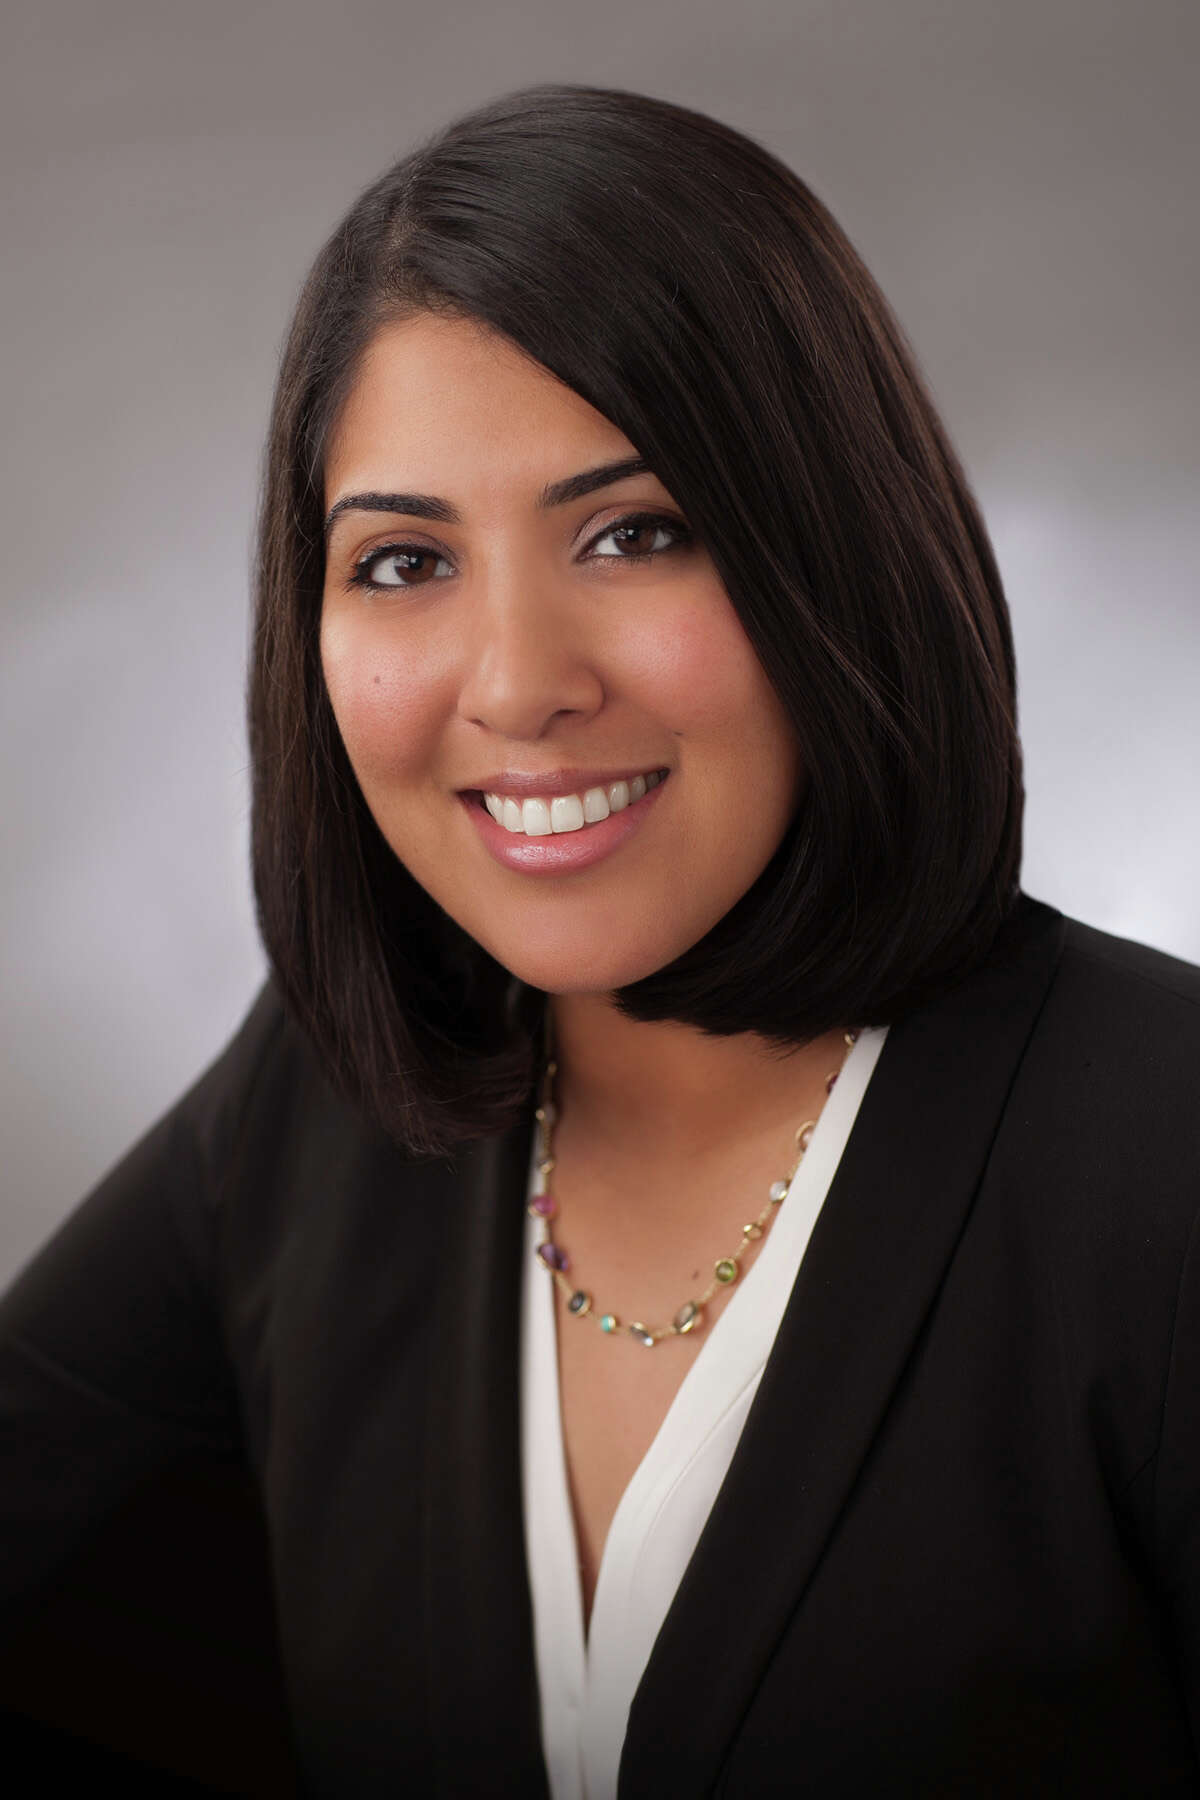 Houston energy regulatory lawyer Sabina Walia has joined oil and gas pipeline law firm Caldwell Boudreaux Lefler where she will advise clients in natural gas/liquids and midstream project development.